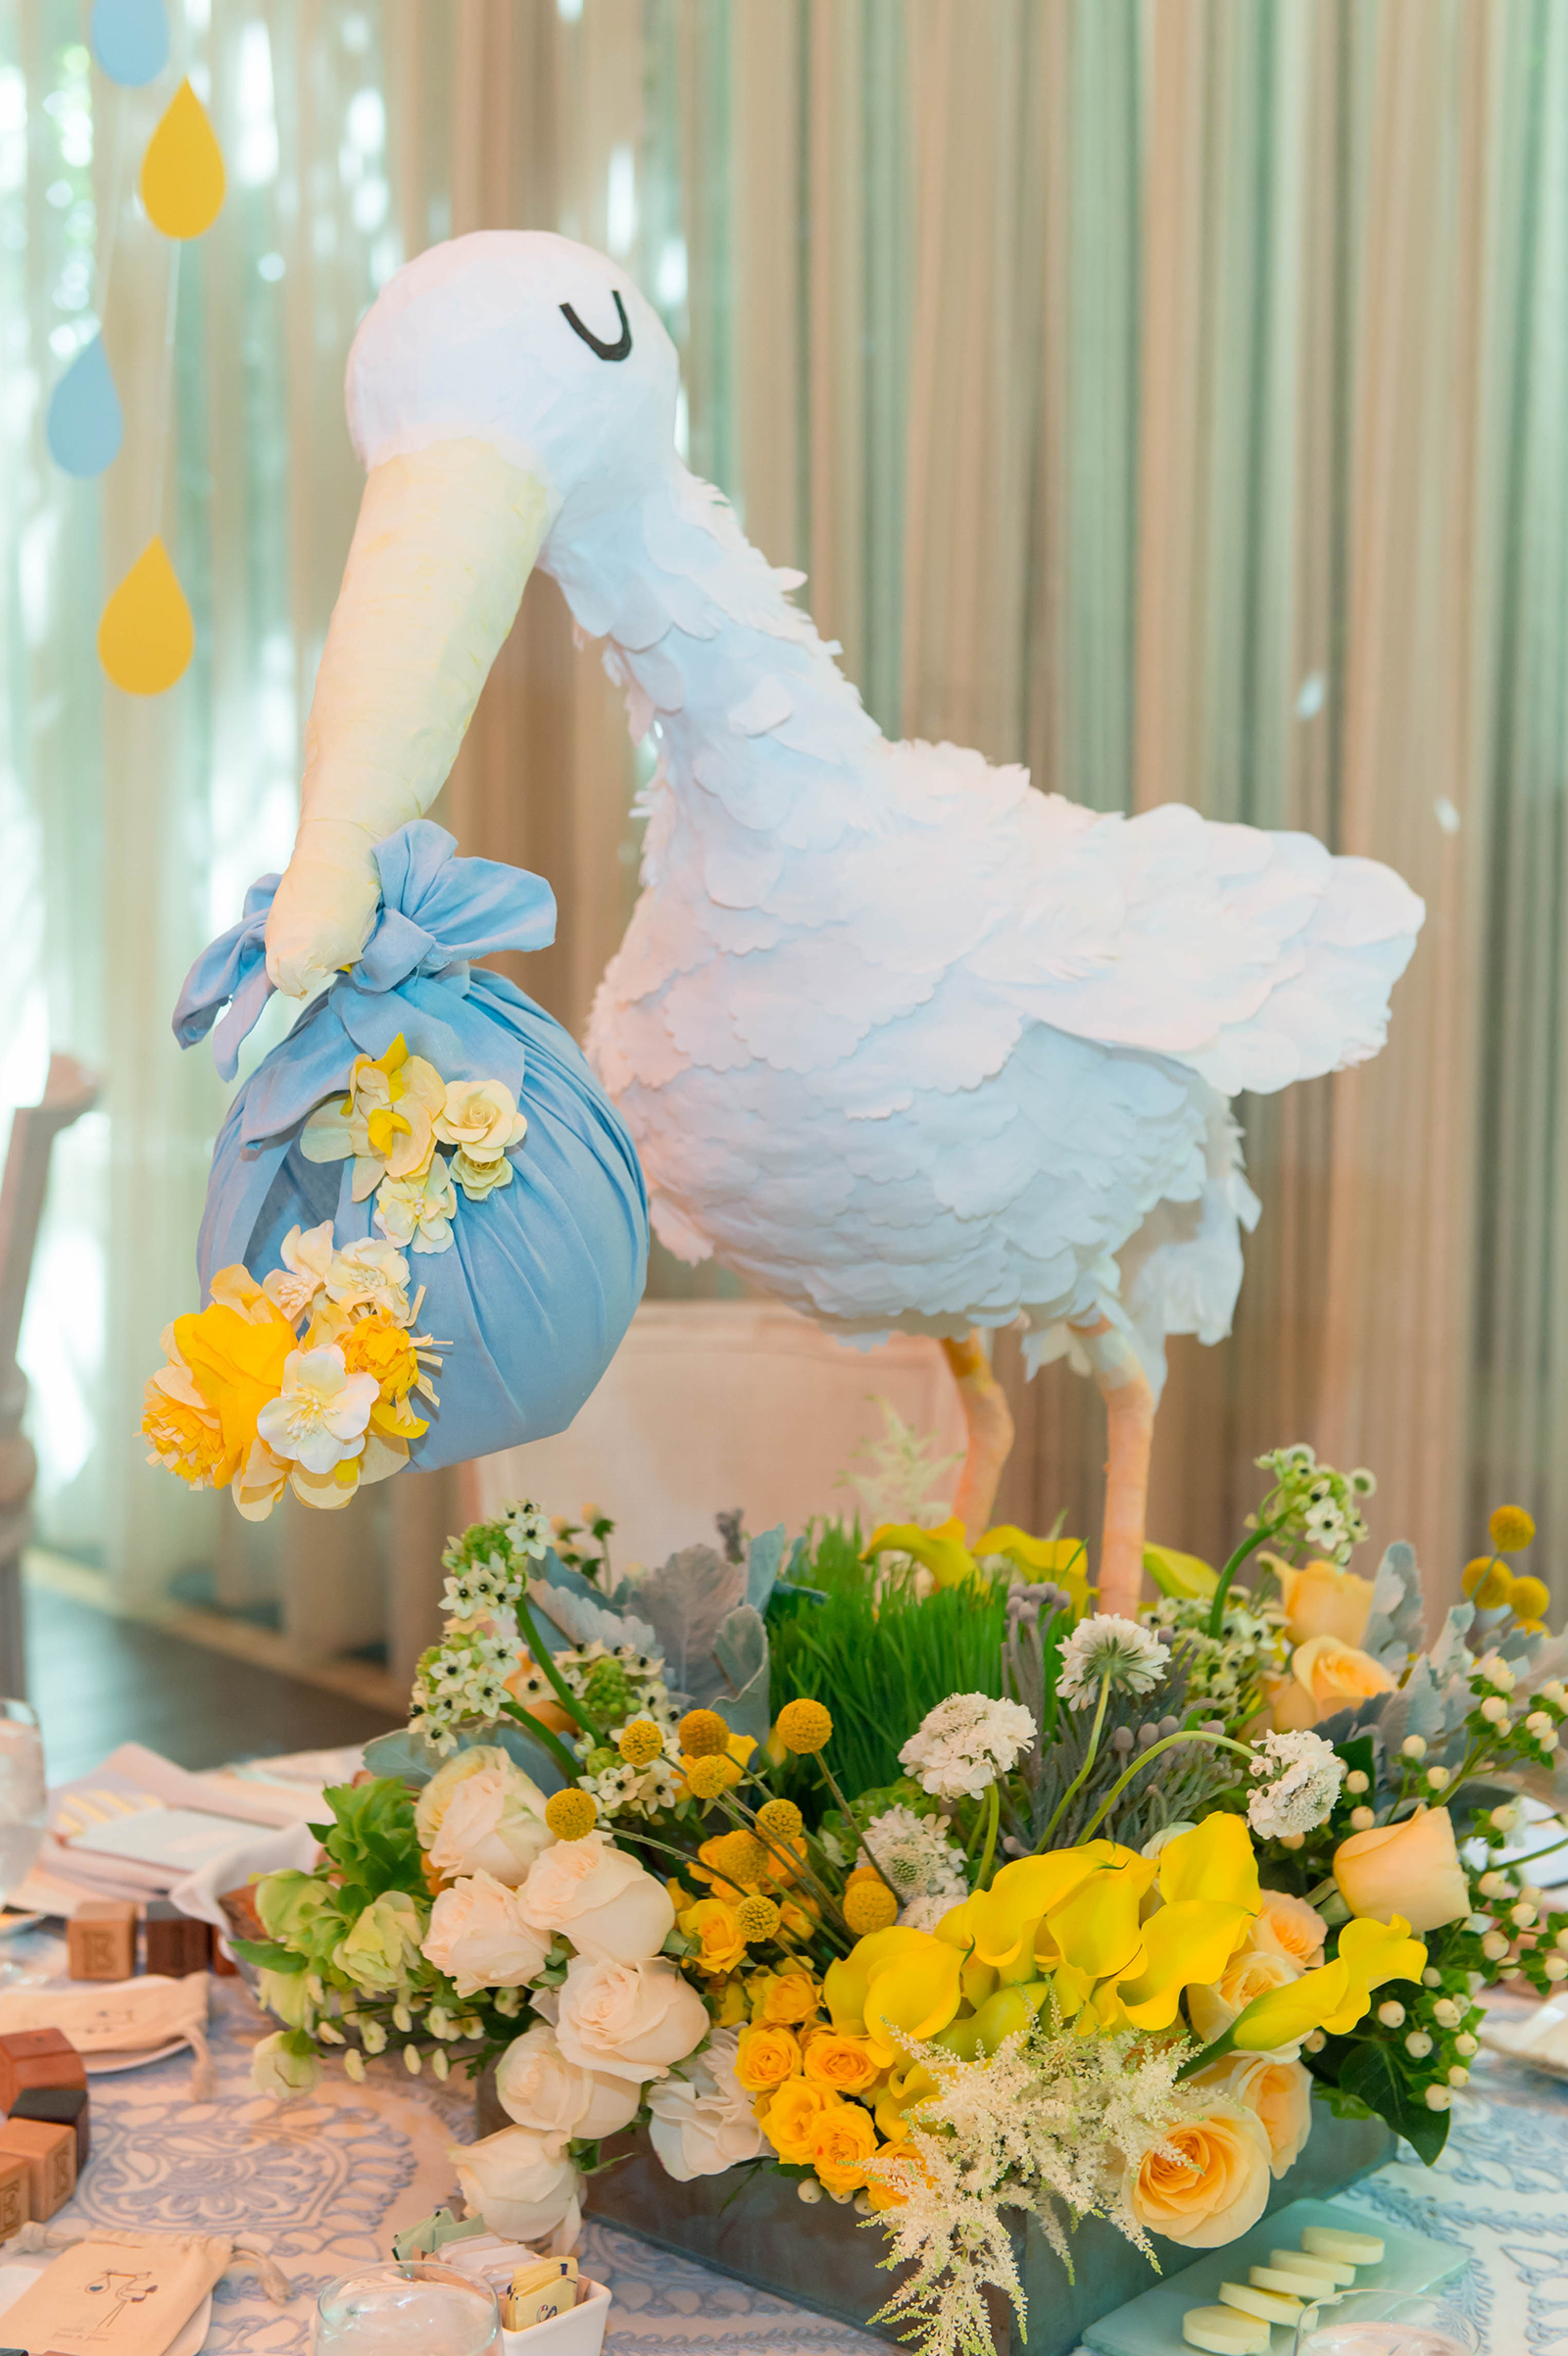 four-seasons-beverly-hills-baby-shower-10